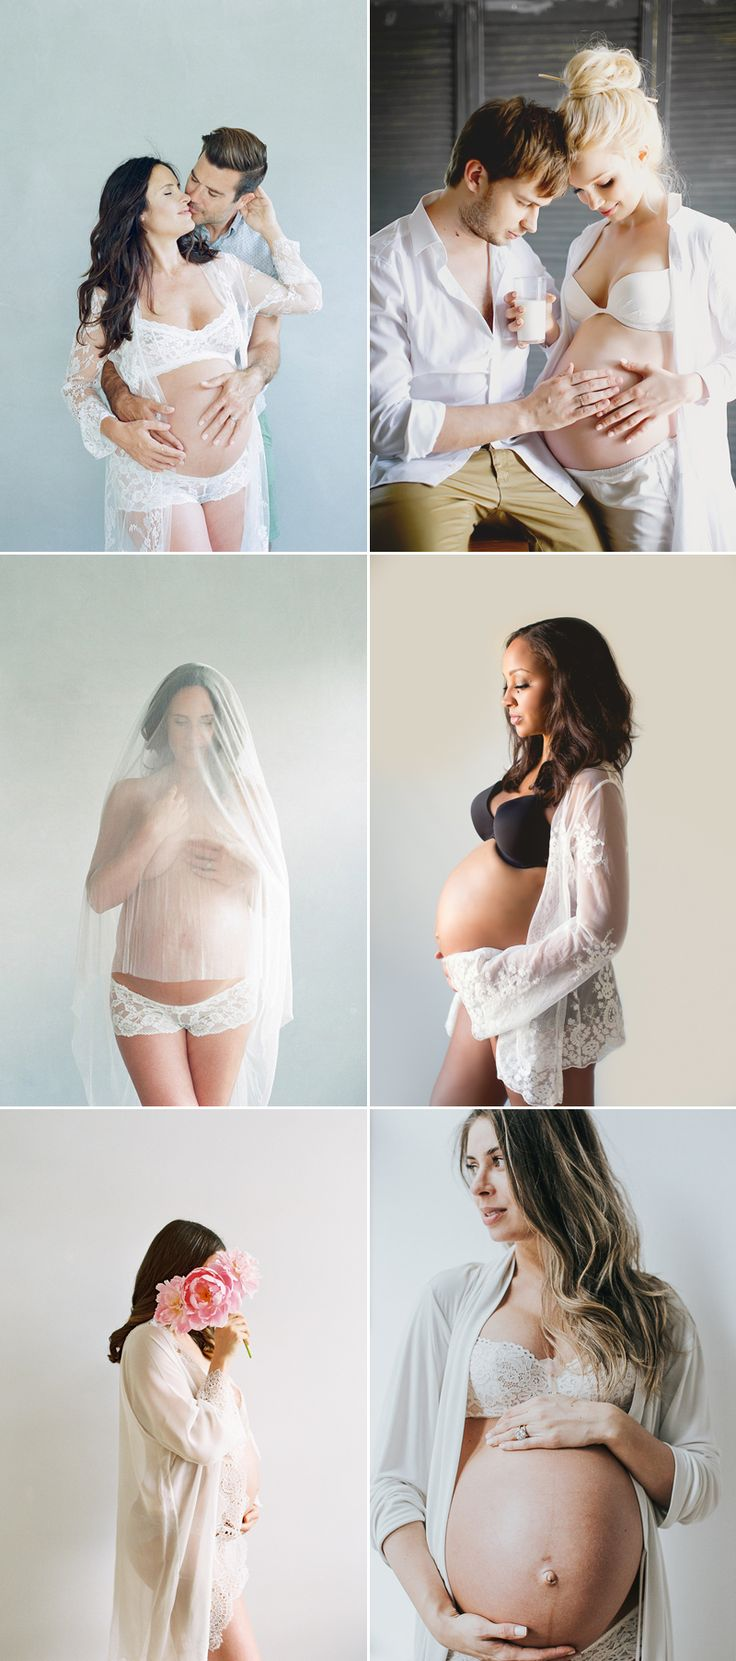 Oh Baby! 34 Beautiful Home Maternity Photos We Love! A Clean Wall